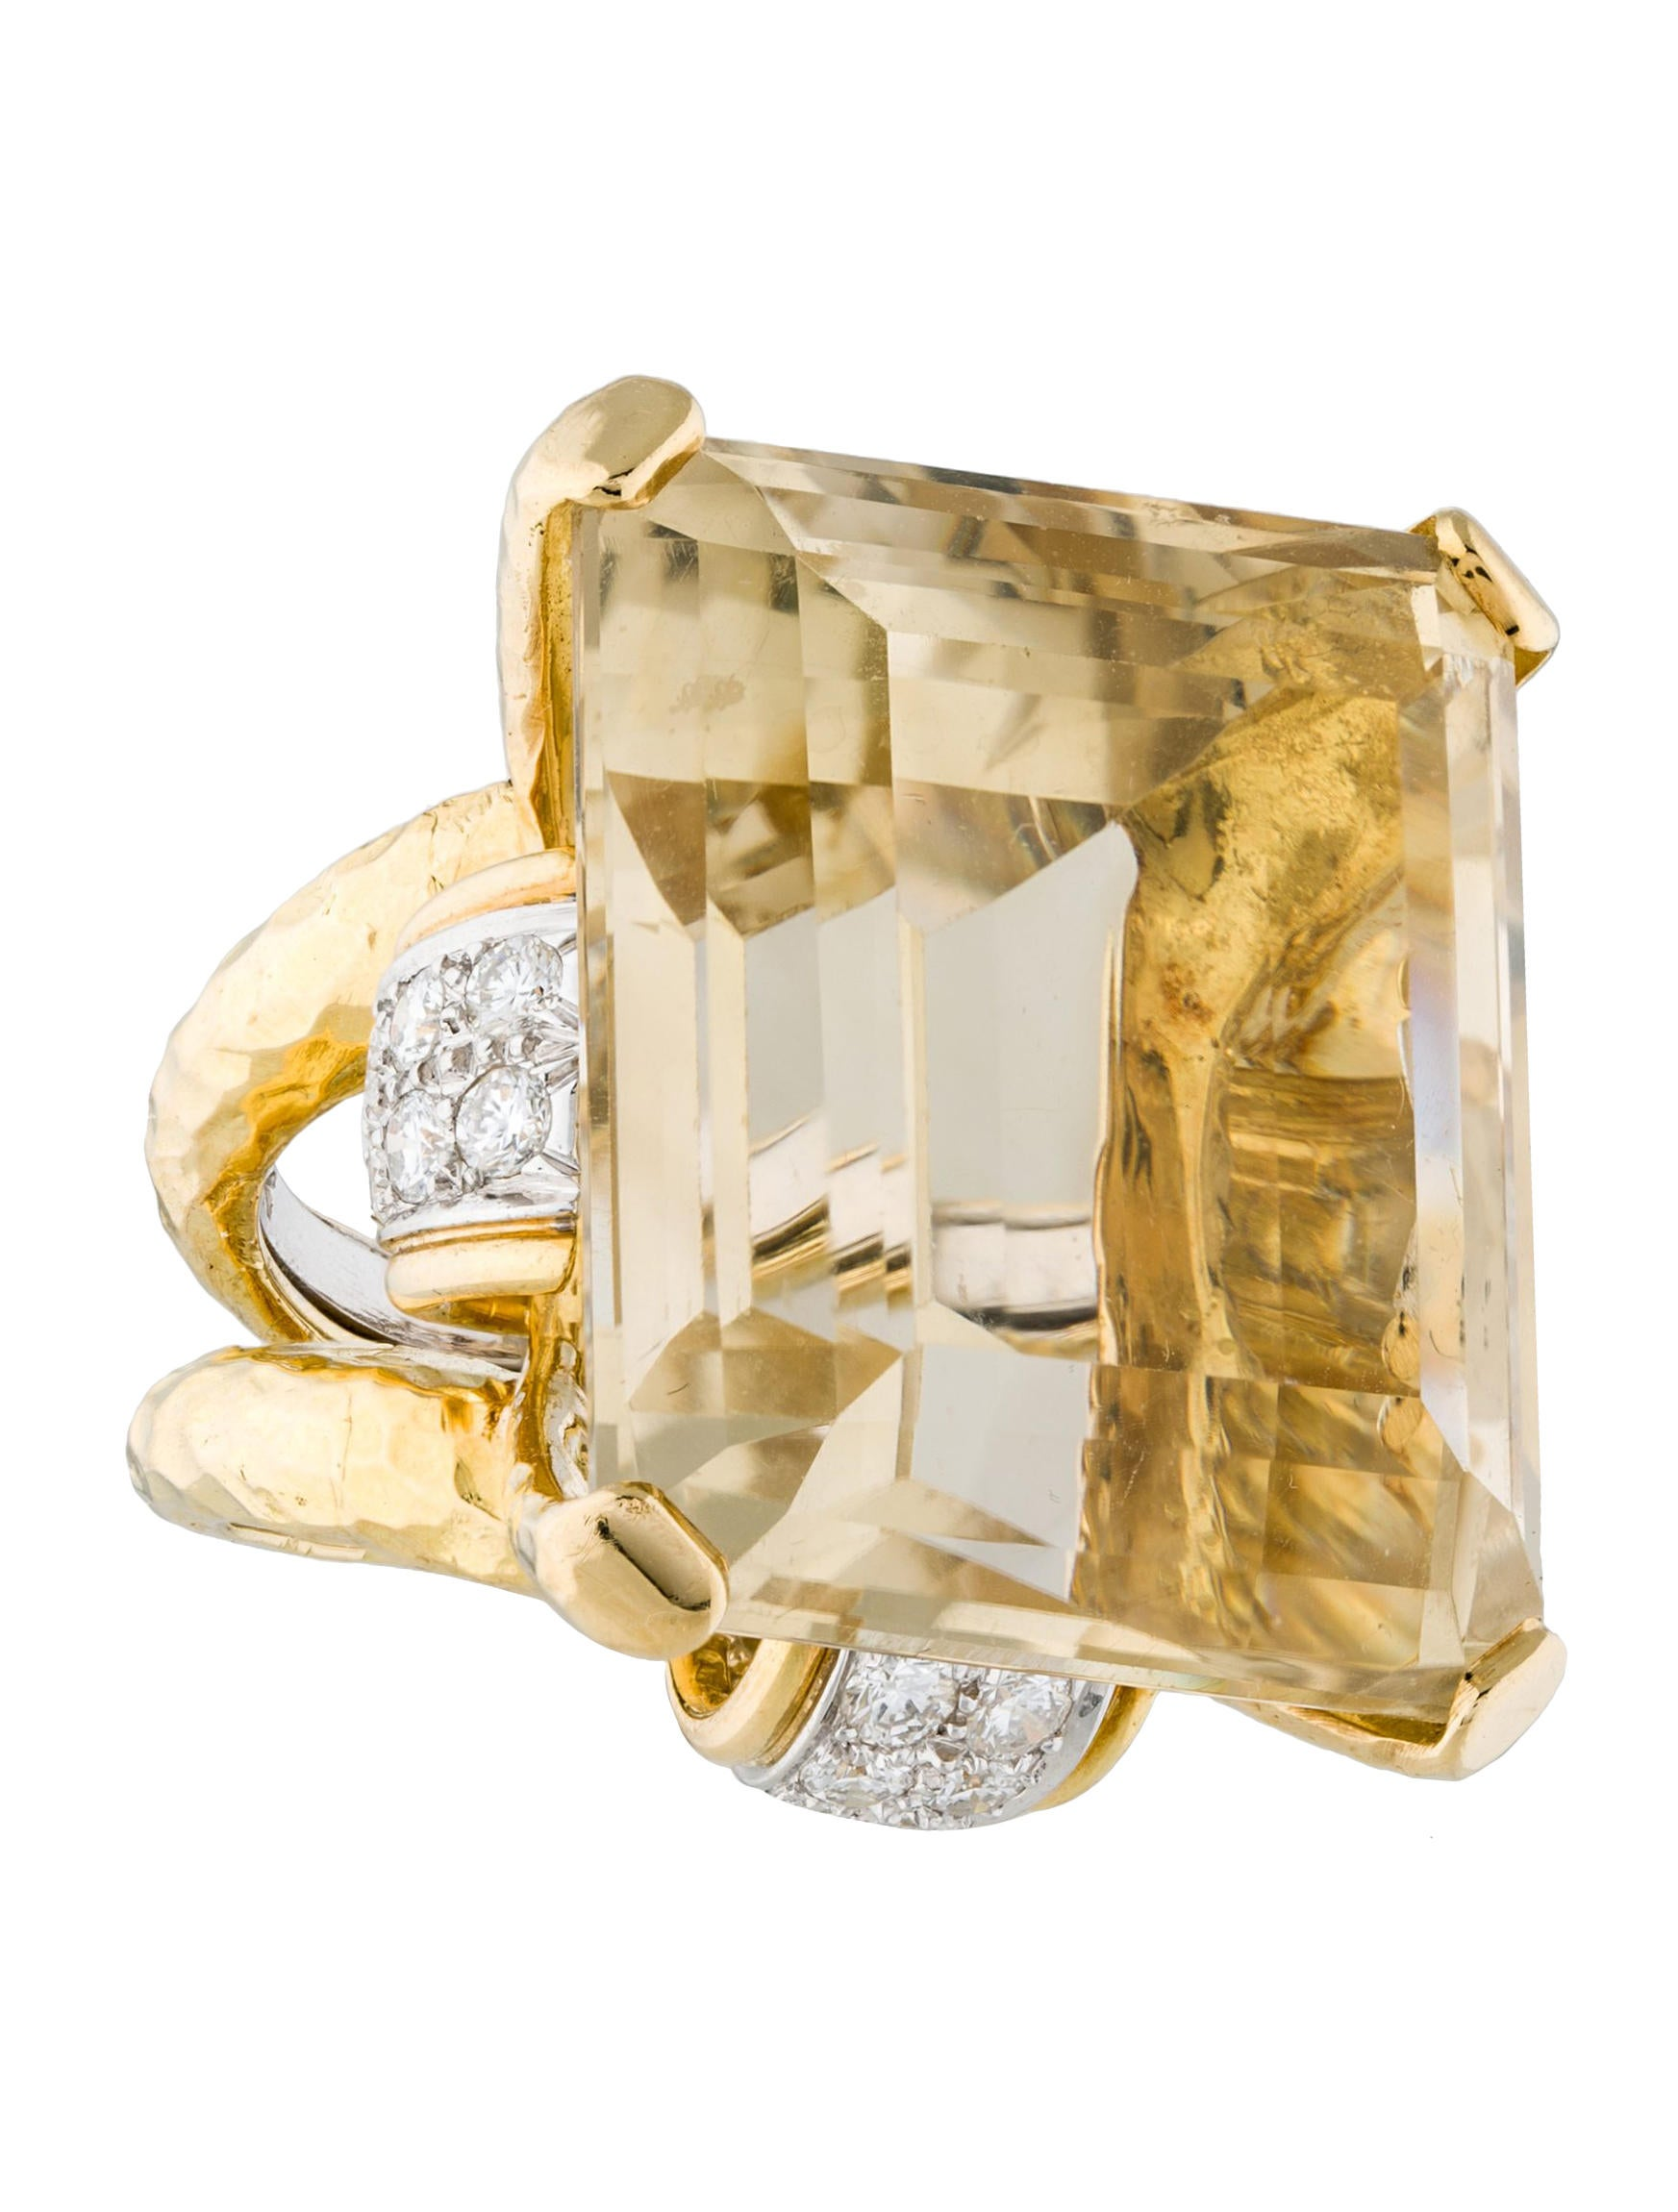 david webb citrine and diamond cocktail ring rings